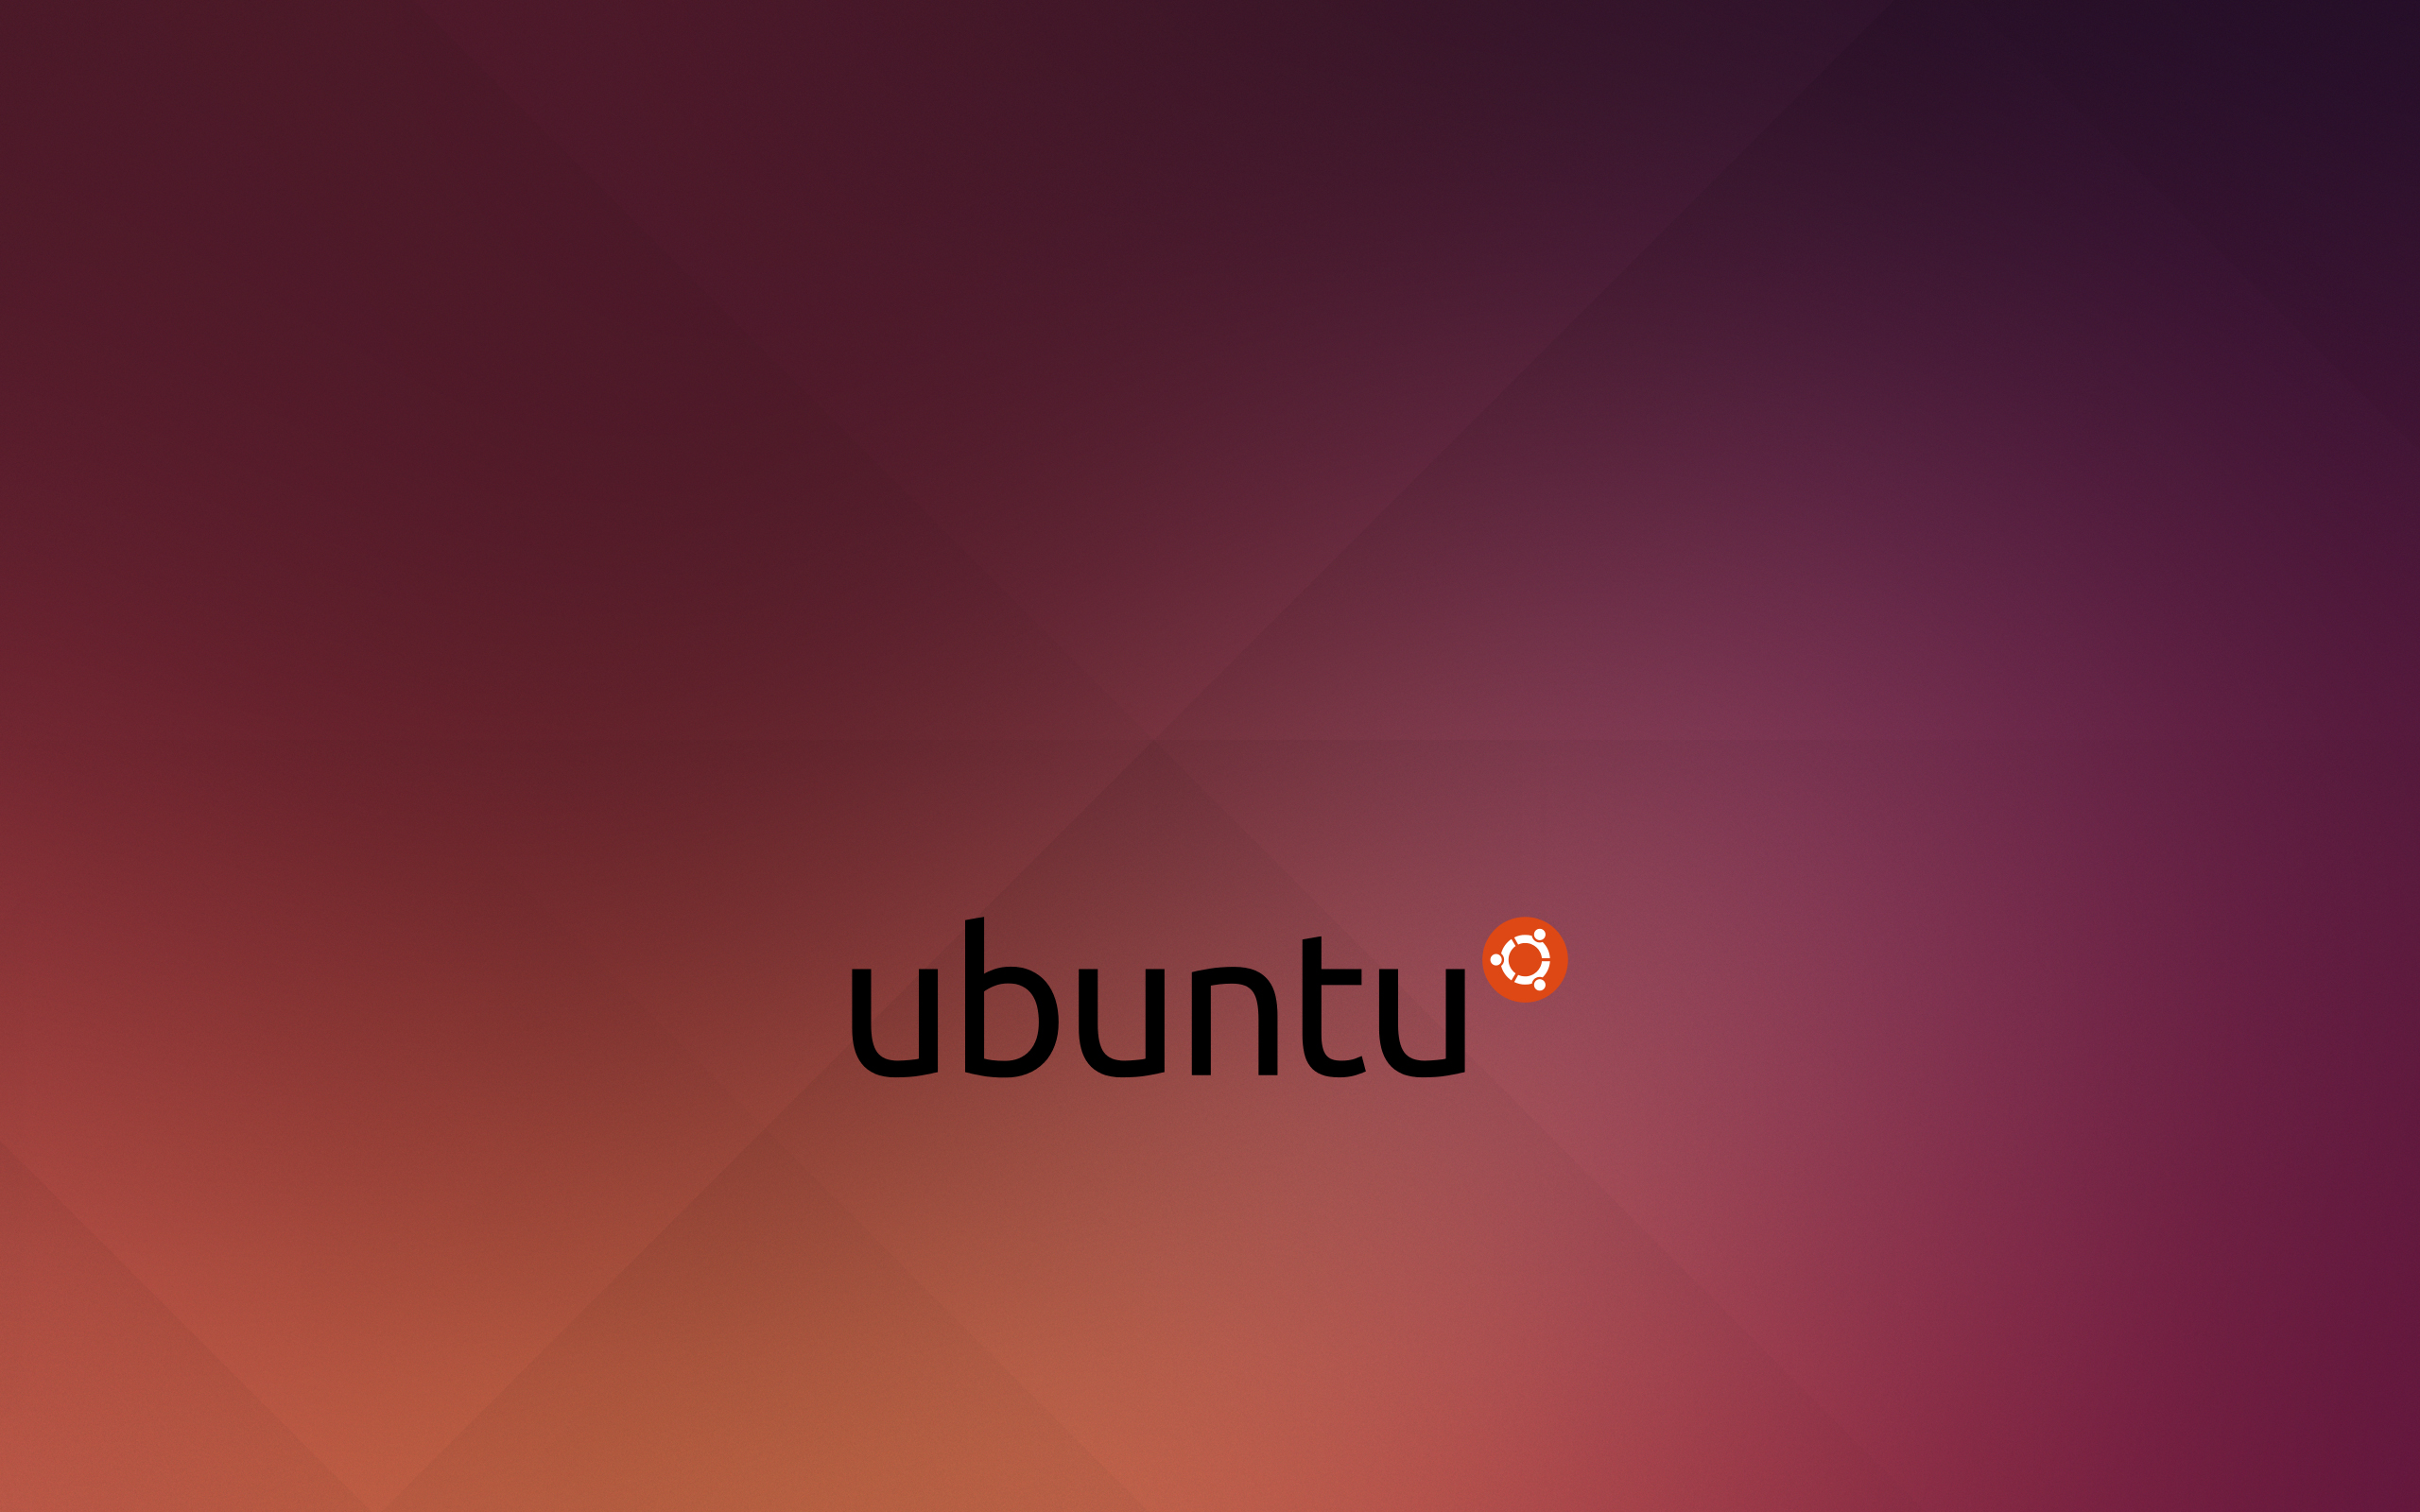 Ubuntu Wallpapers Pictures Images 2560x1600